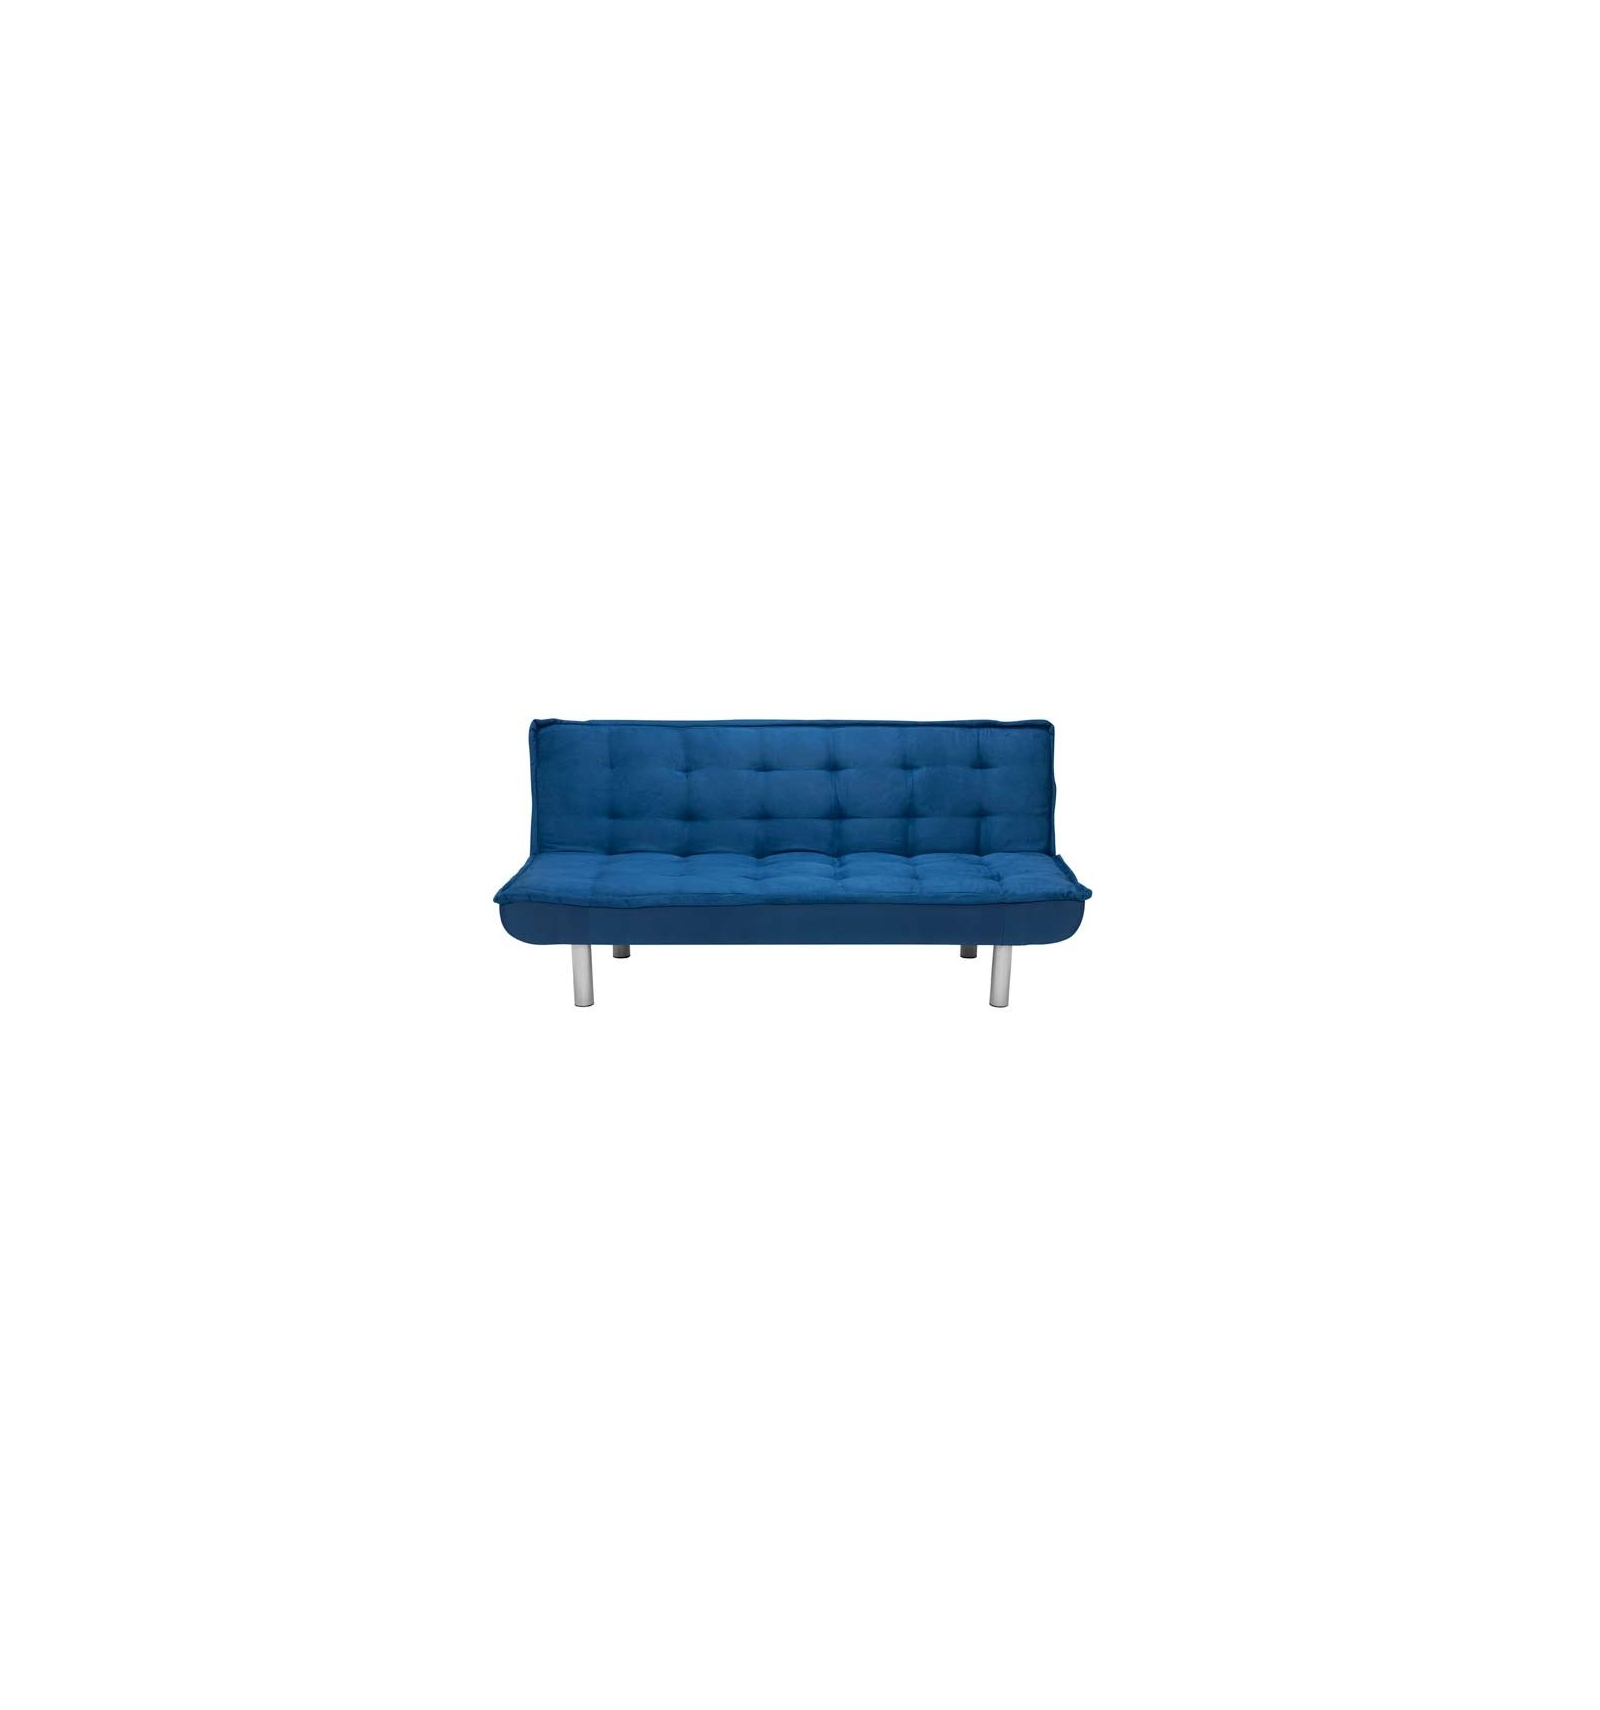 Schlafcouch Blau schlafcouch